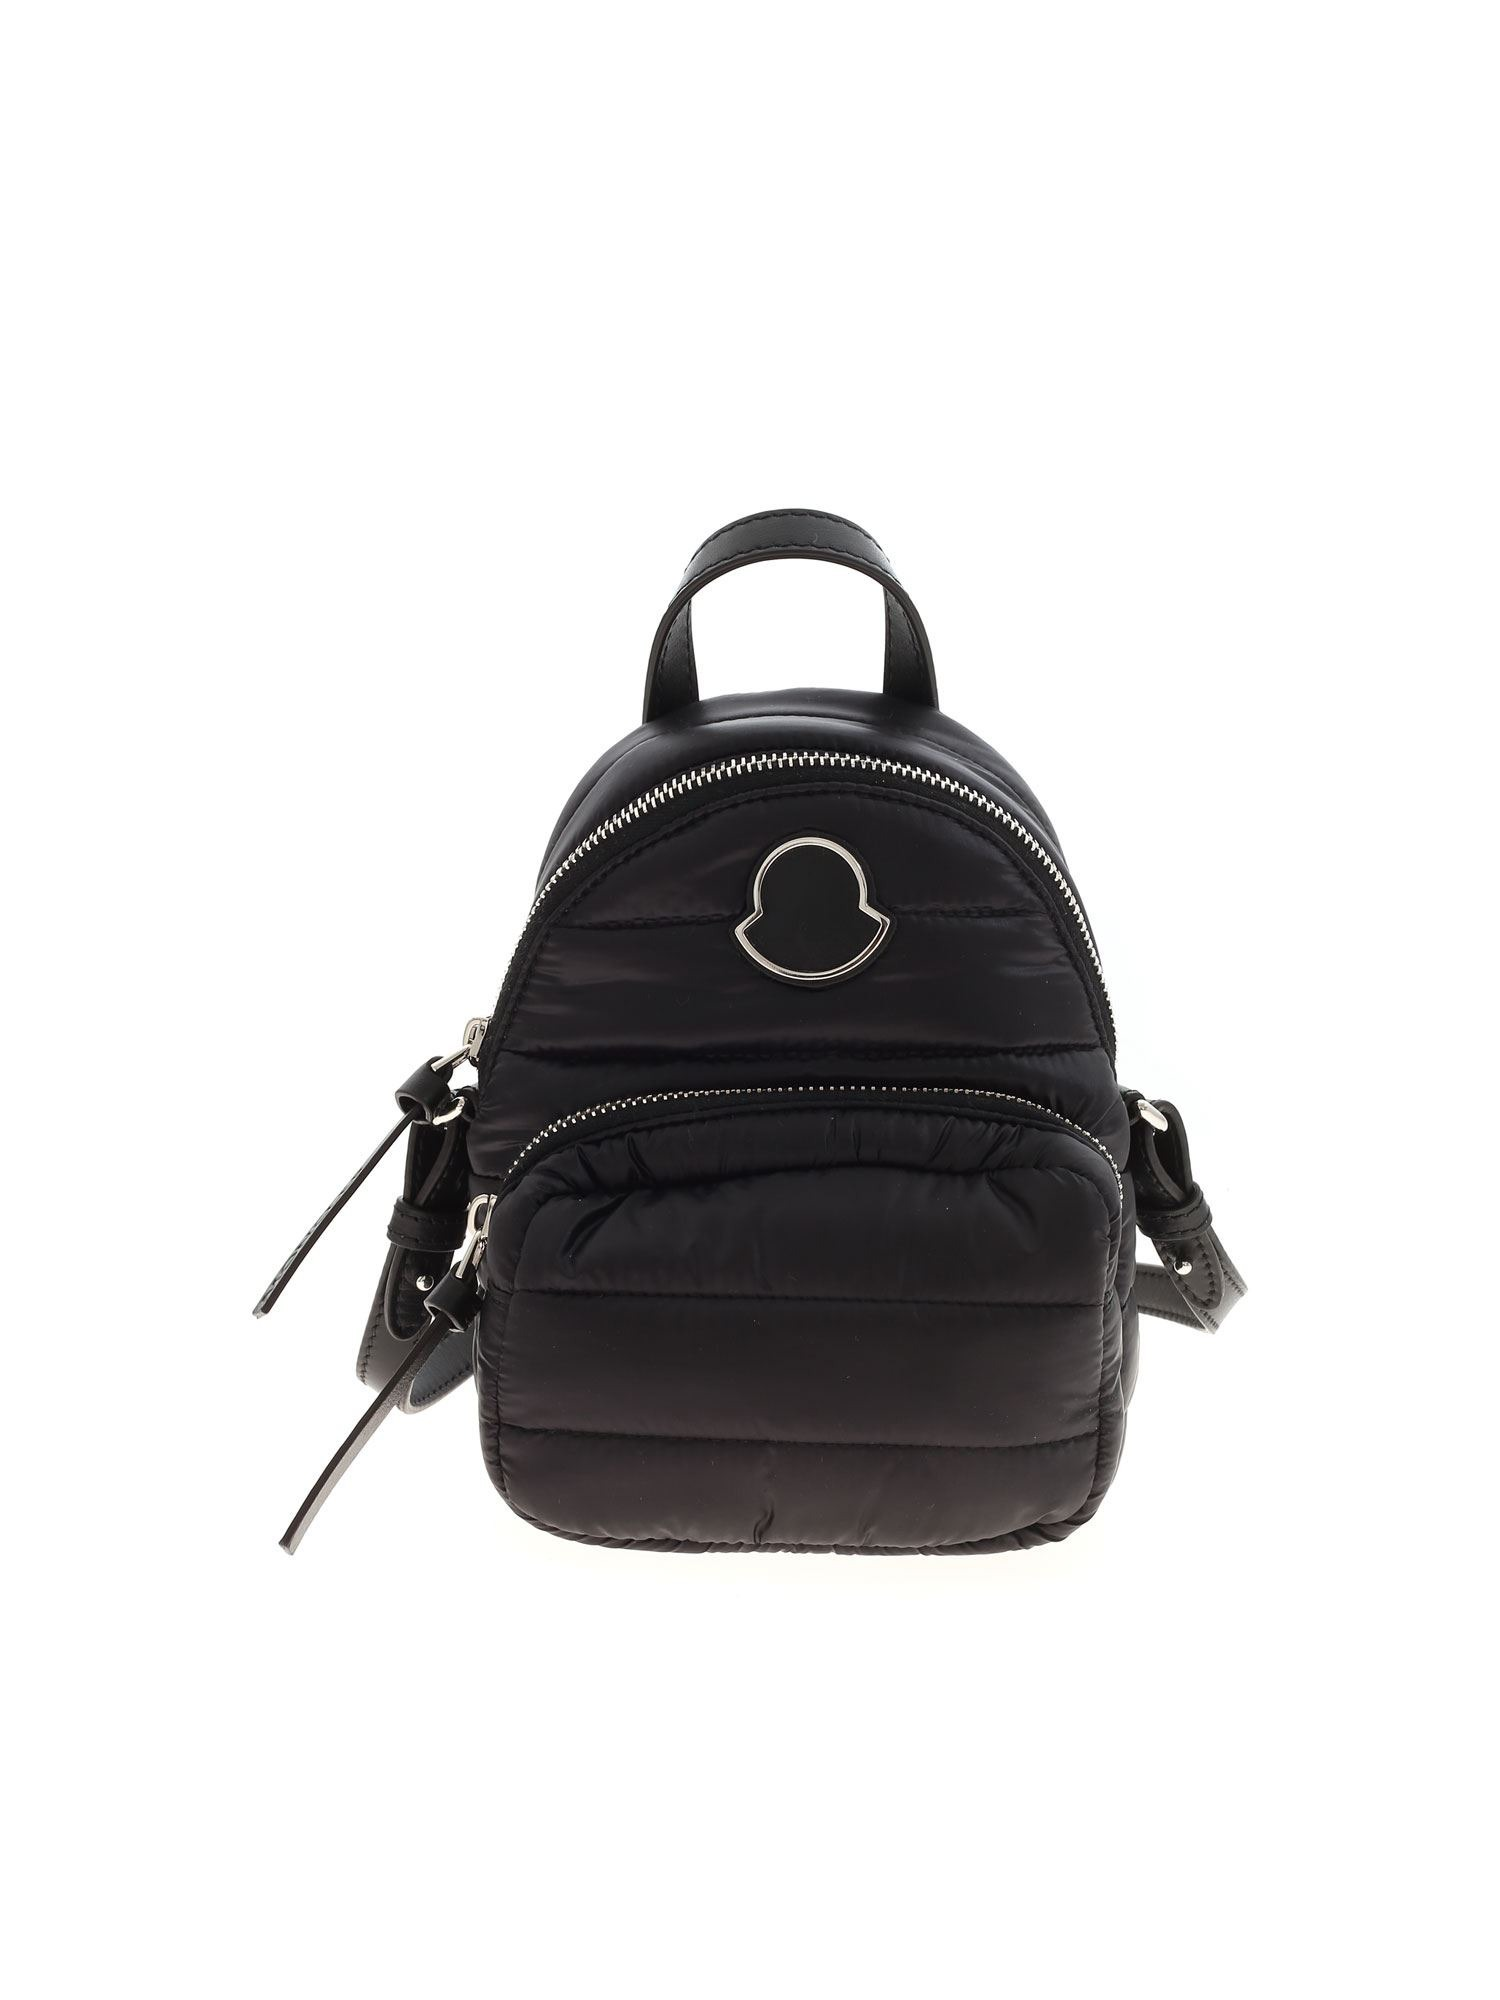 KILIA SMALL QUILTED BACKPACK スモールバックパック (MONCLER/バックパック・リュック) 5L6001002SA4999  5L6001002STN201